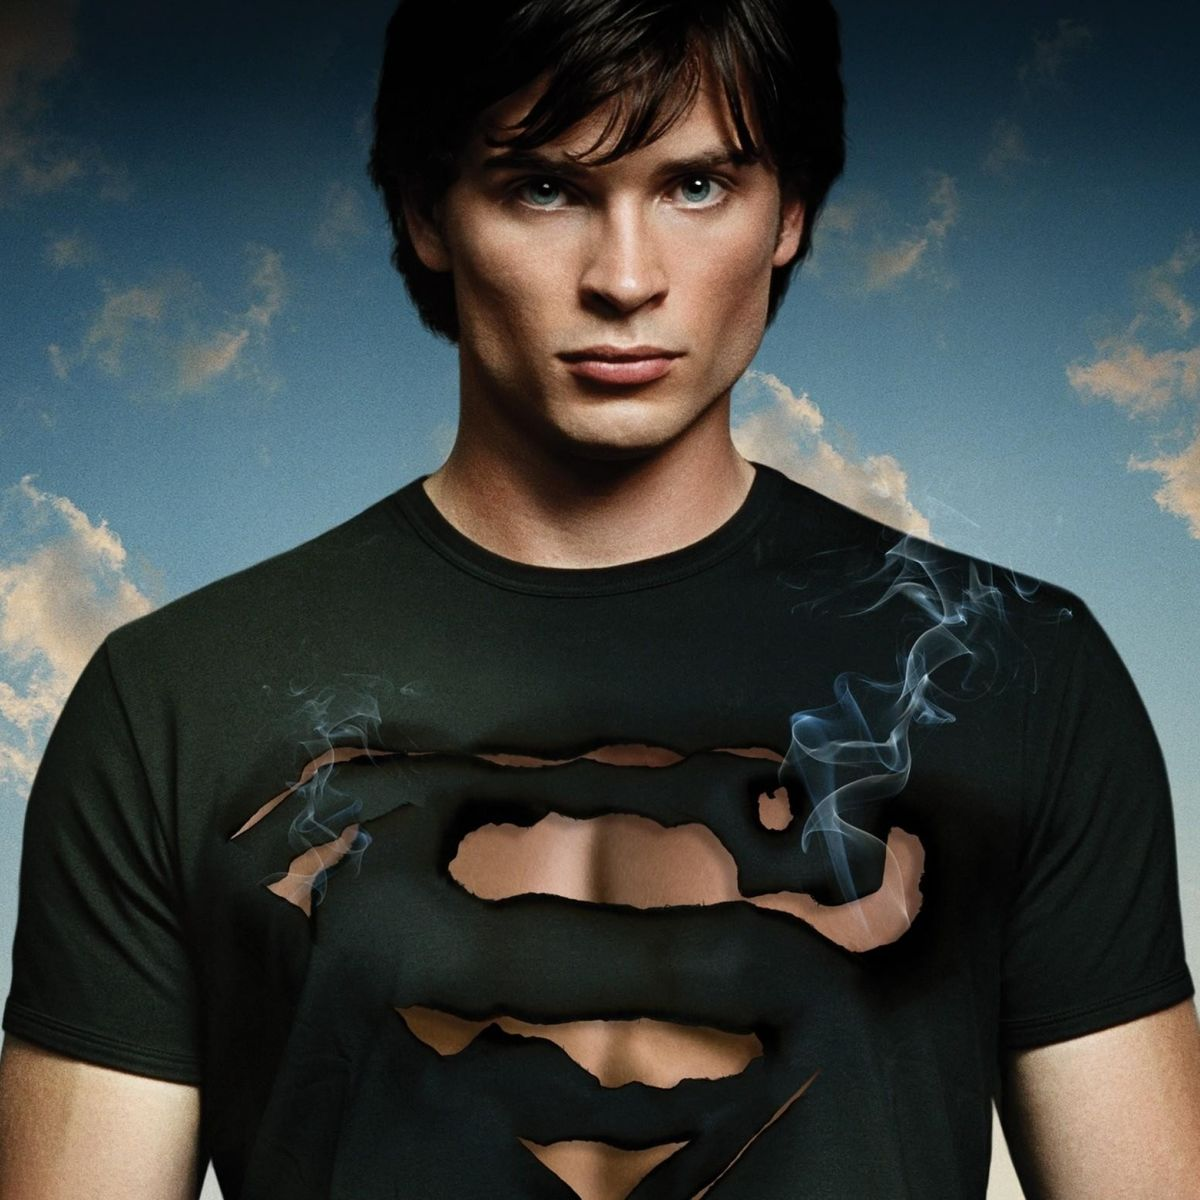 Tom-Welling-Smallville.jpg